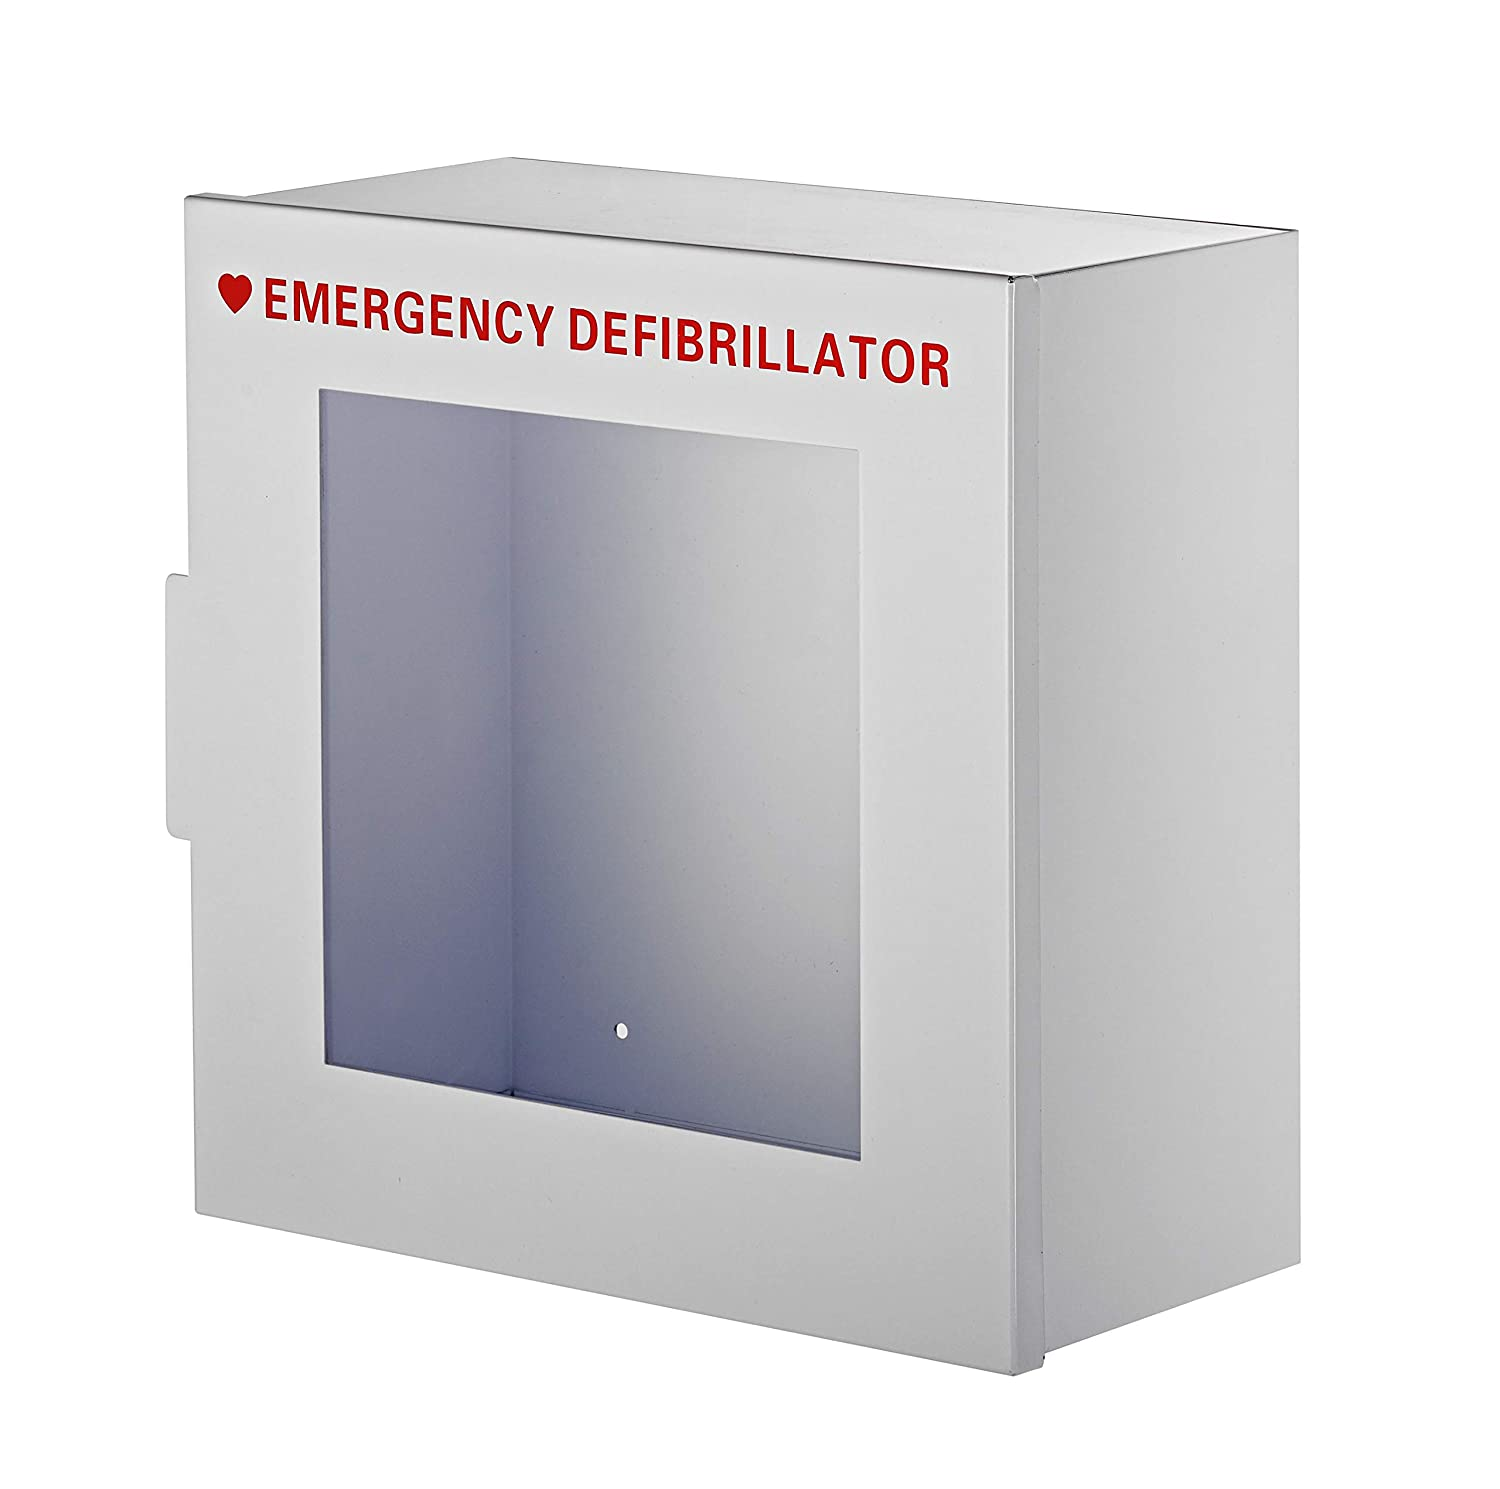 "AdirMed Non-Alarmed Steel Cabinet Defibrillators 15"" W x 15"" H x 7"" - Standard Wall Mounted Enclosure - Easy Access Storage for Emergency Situation for Home & Office"